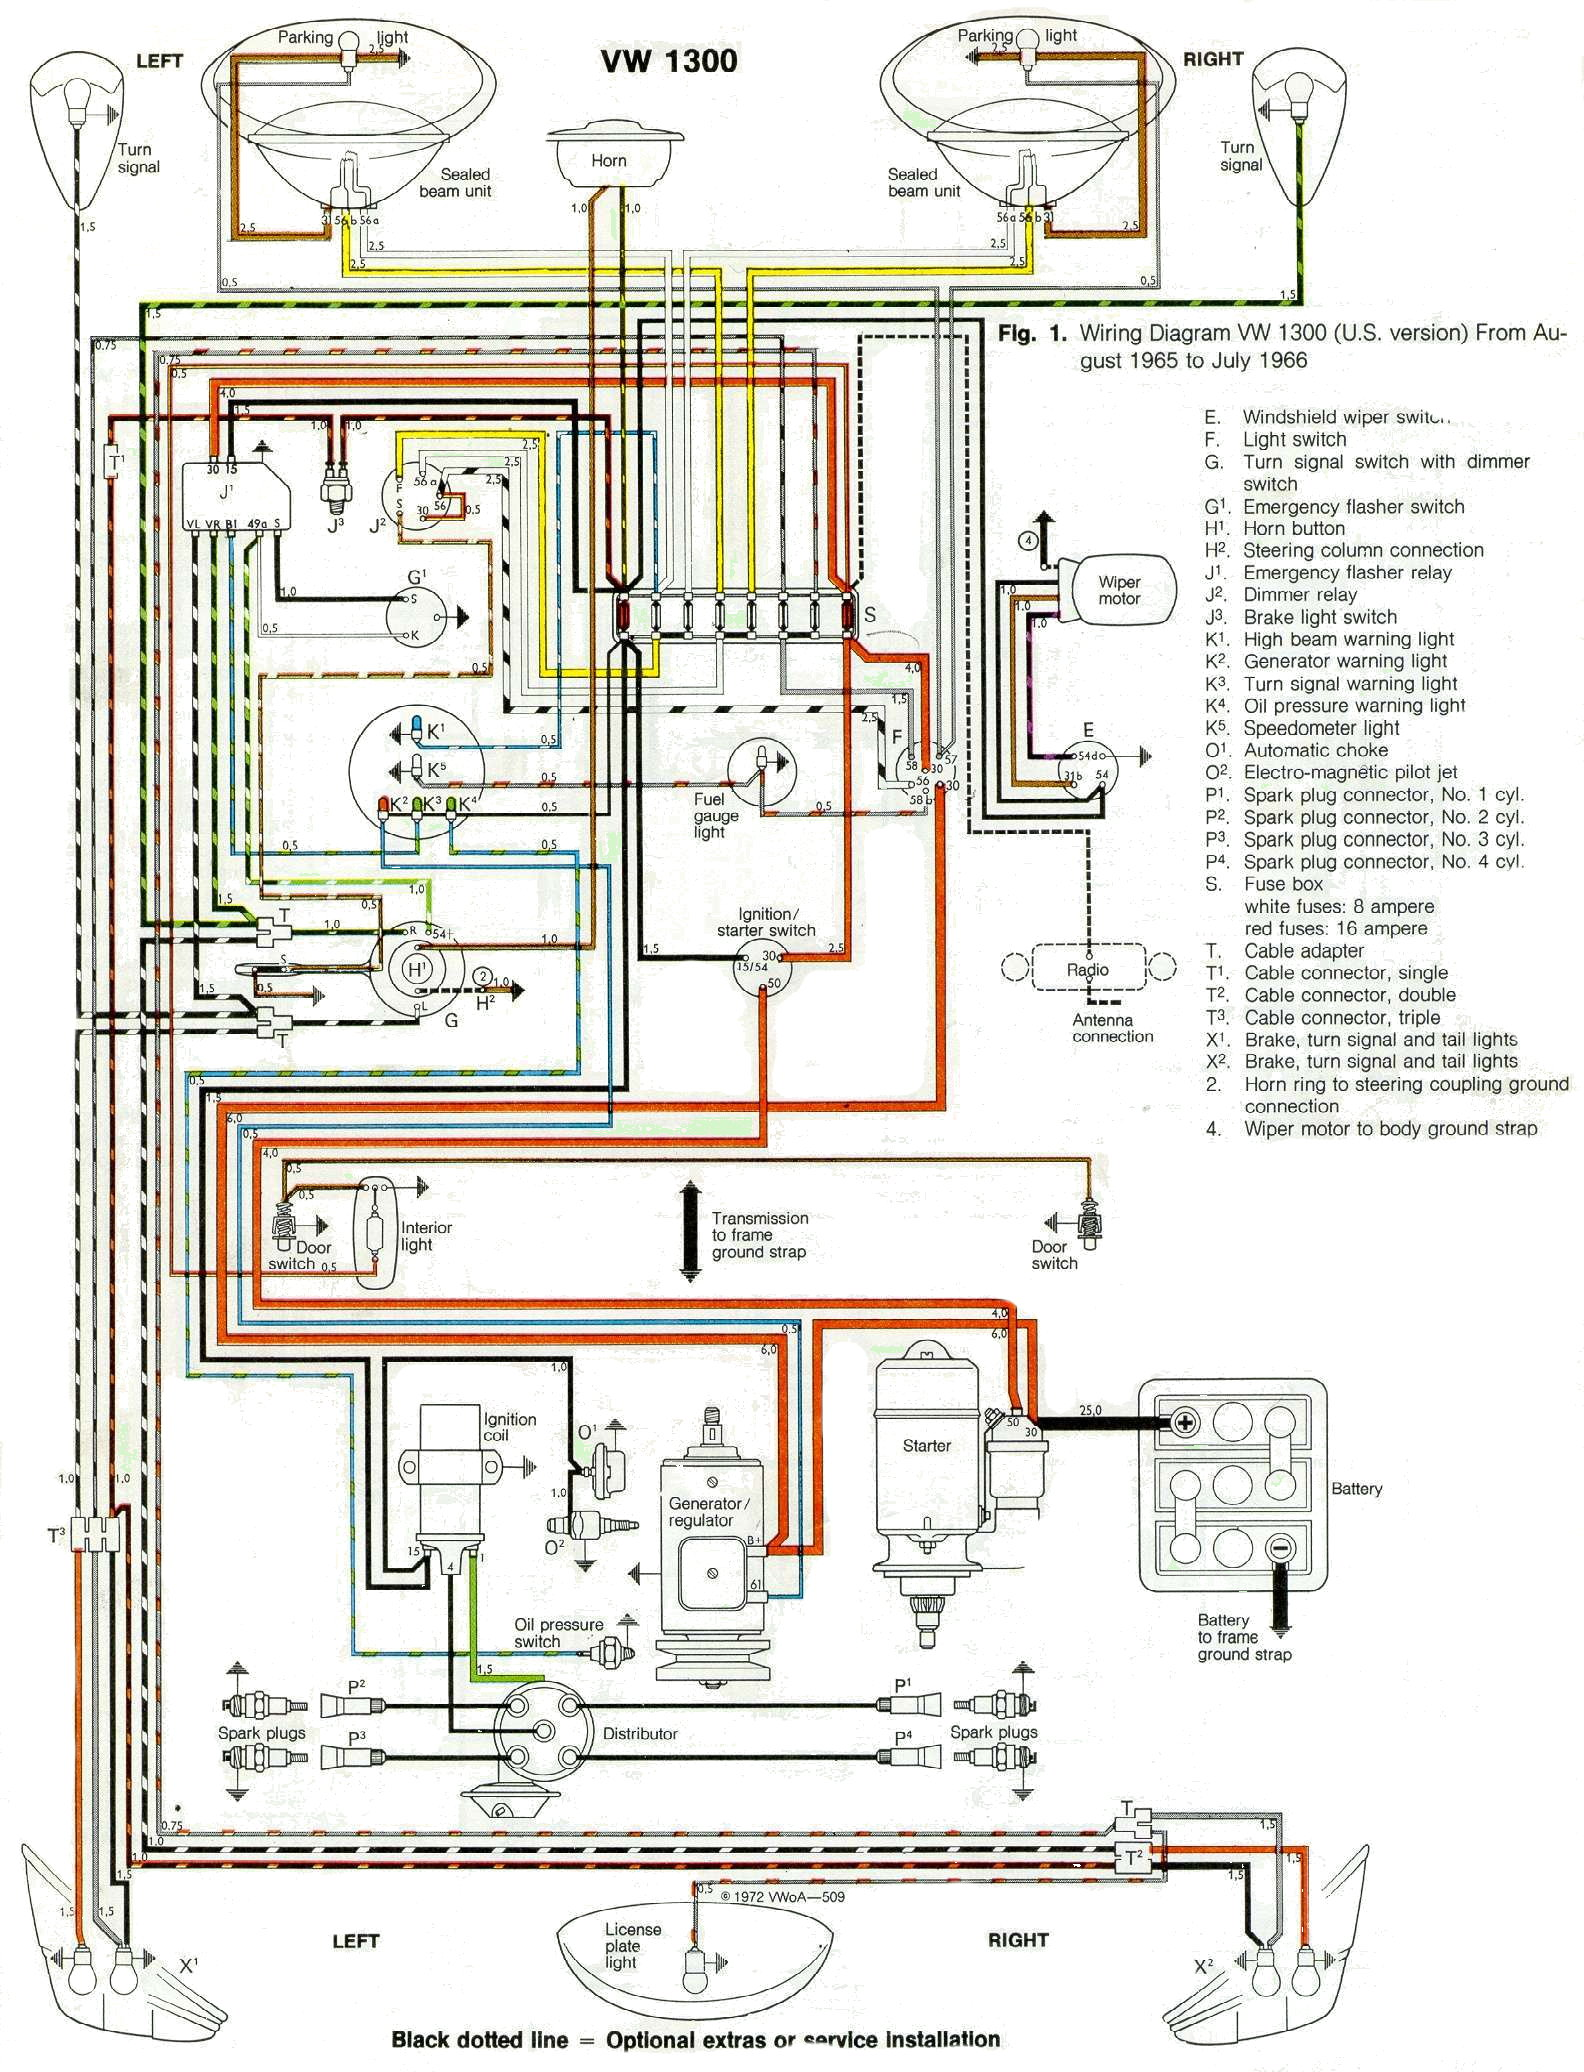 1966 Wiring 1966 wiring diagram vw beetle wiring diagram at bakdesigns.co